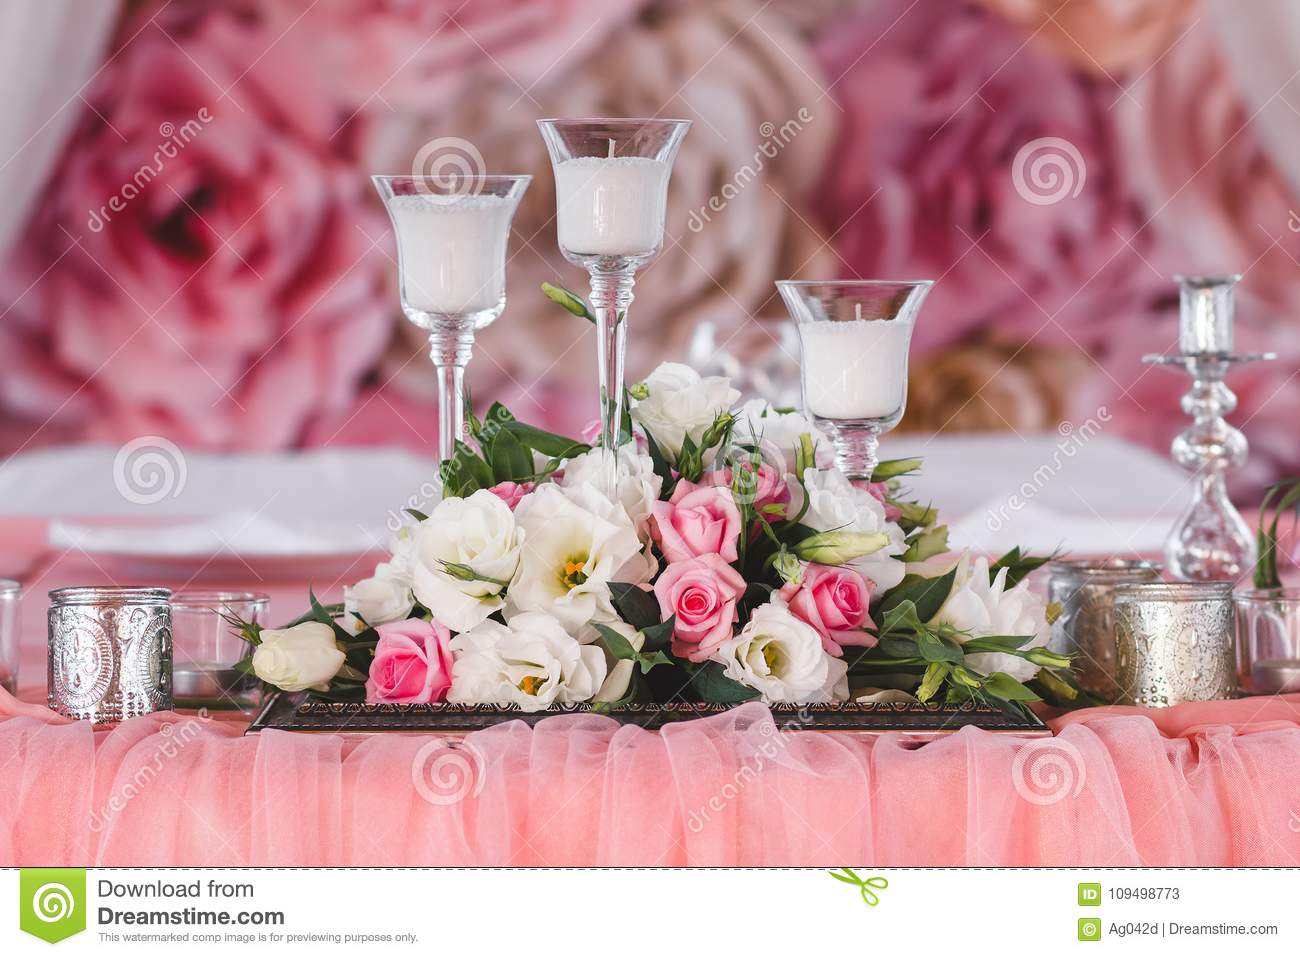 Wedding Table Decorated With Fresh Flowers, Candles And Silver Cups ...